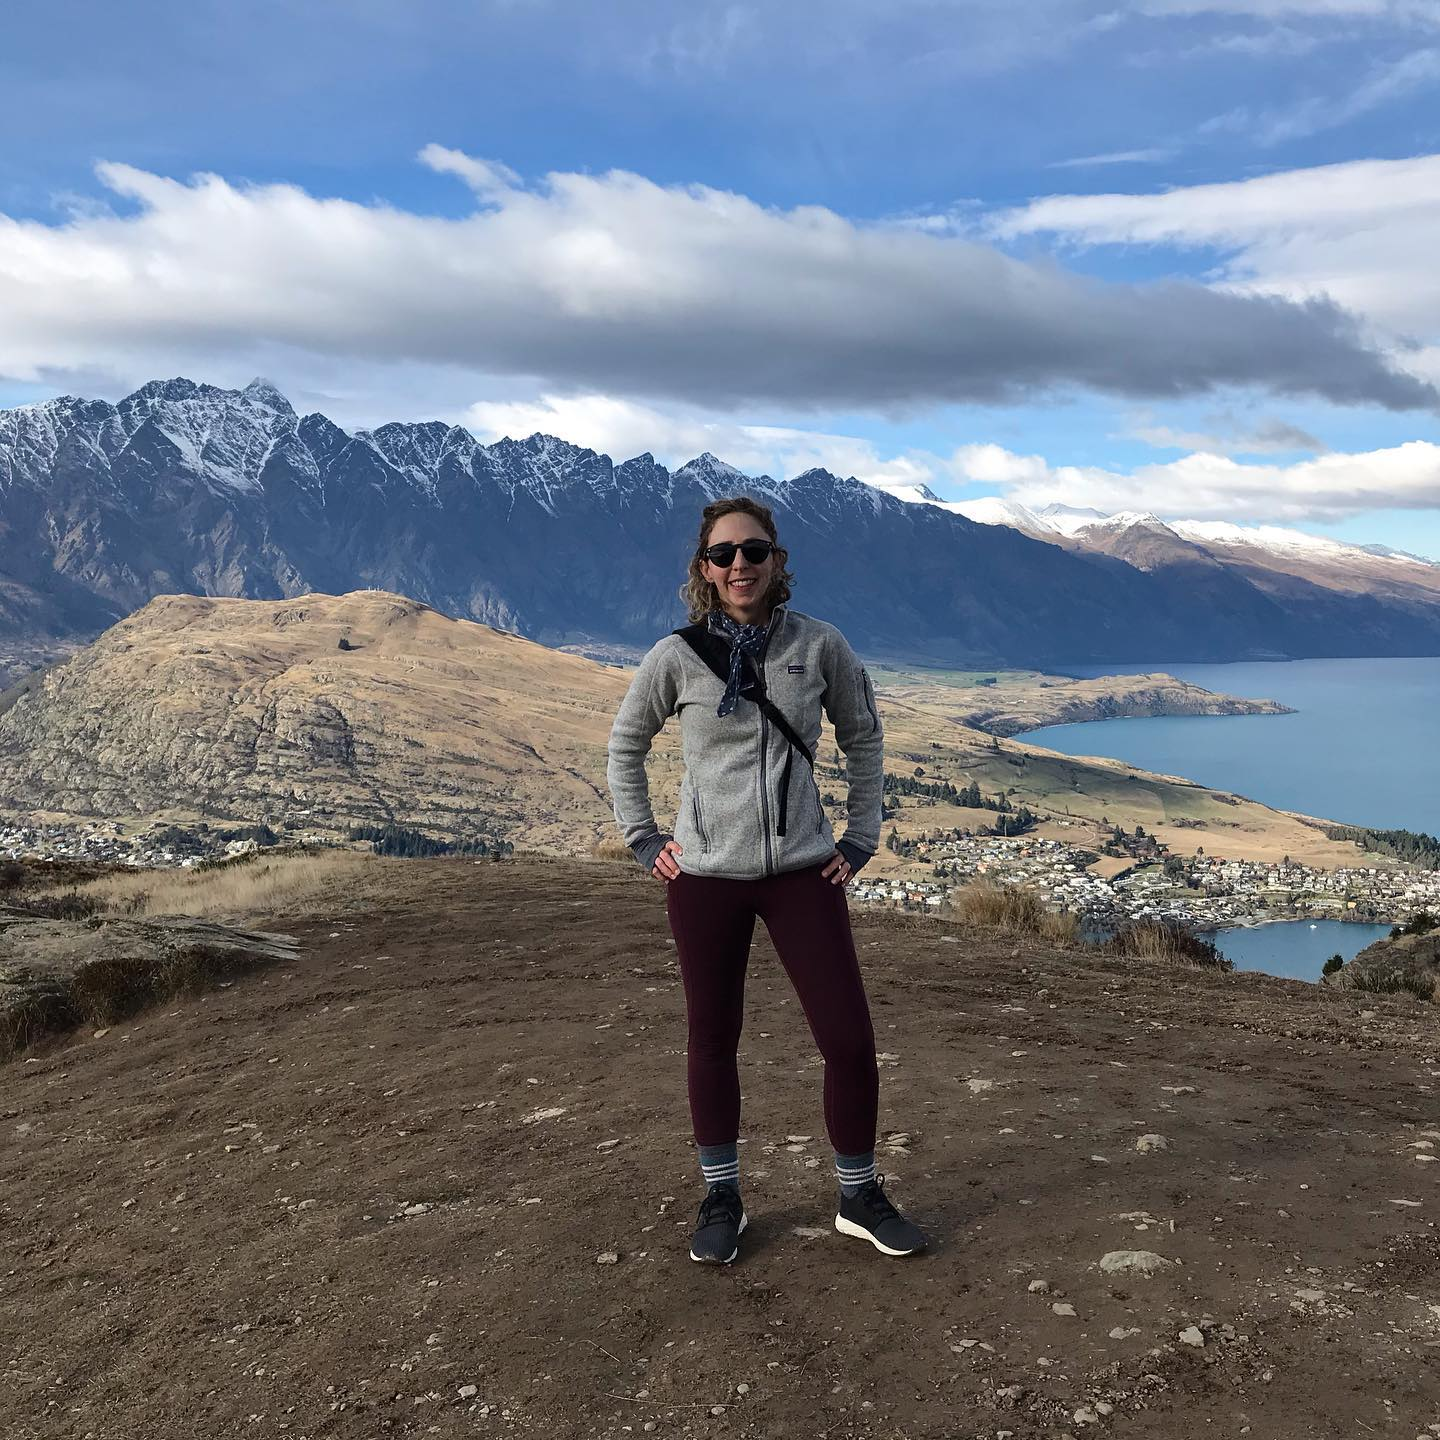 Queenstown Hill Summit Trek - note that my overcoat is off to truly show how bad-ass I am … yes I was freezing.